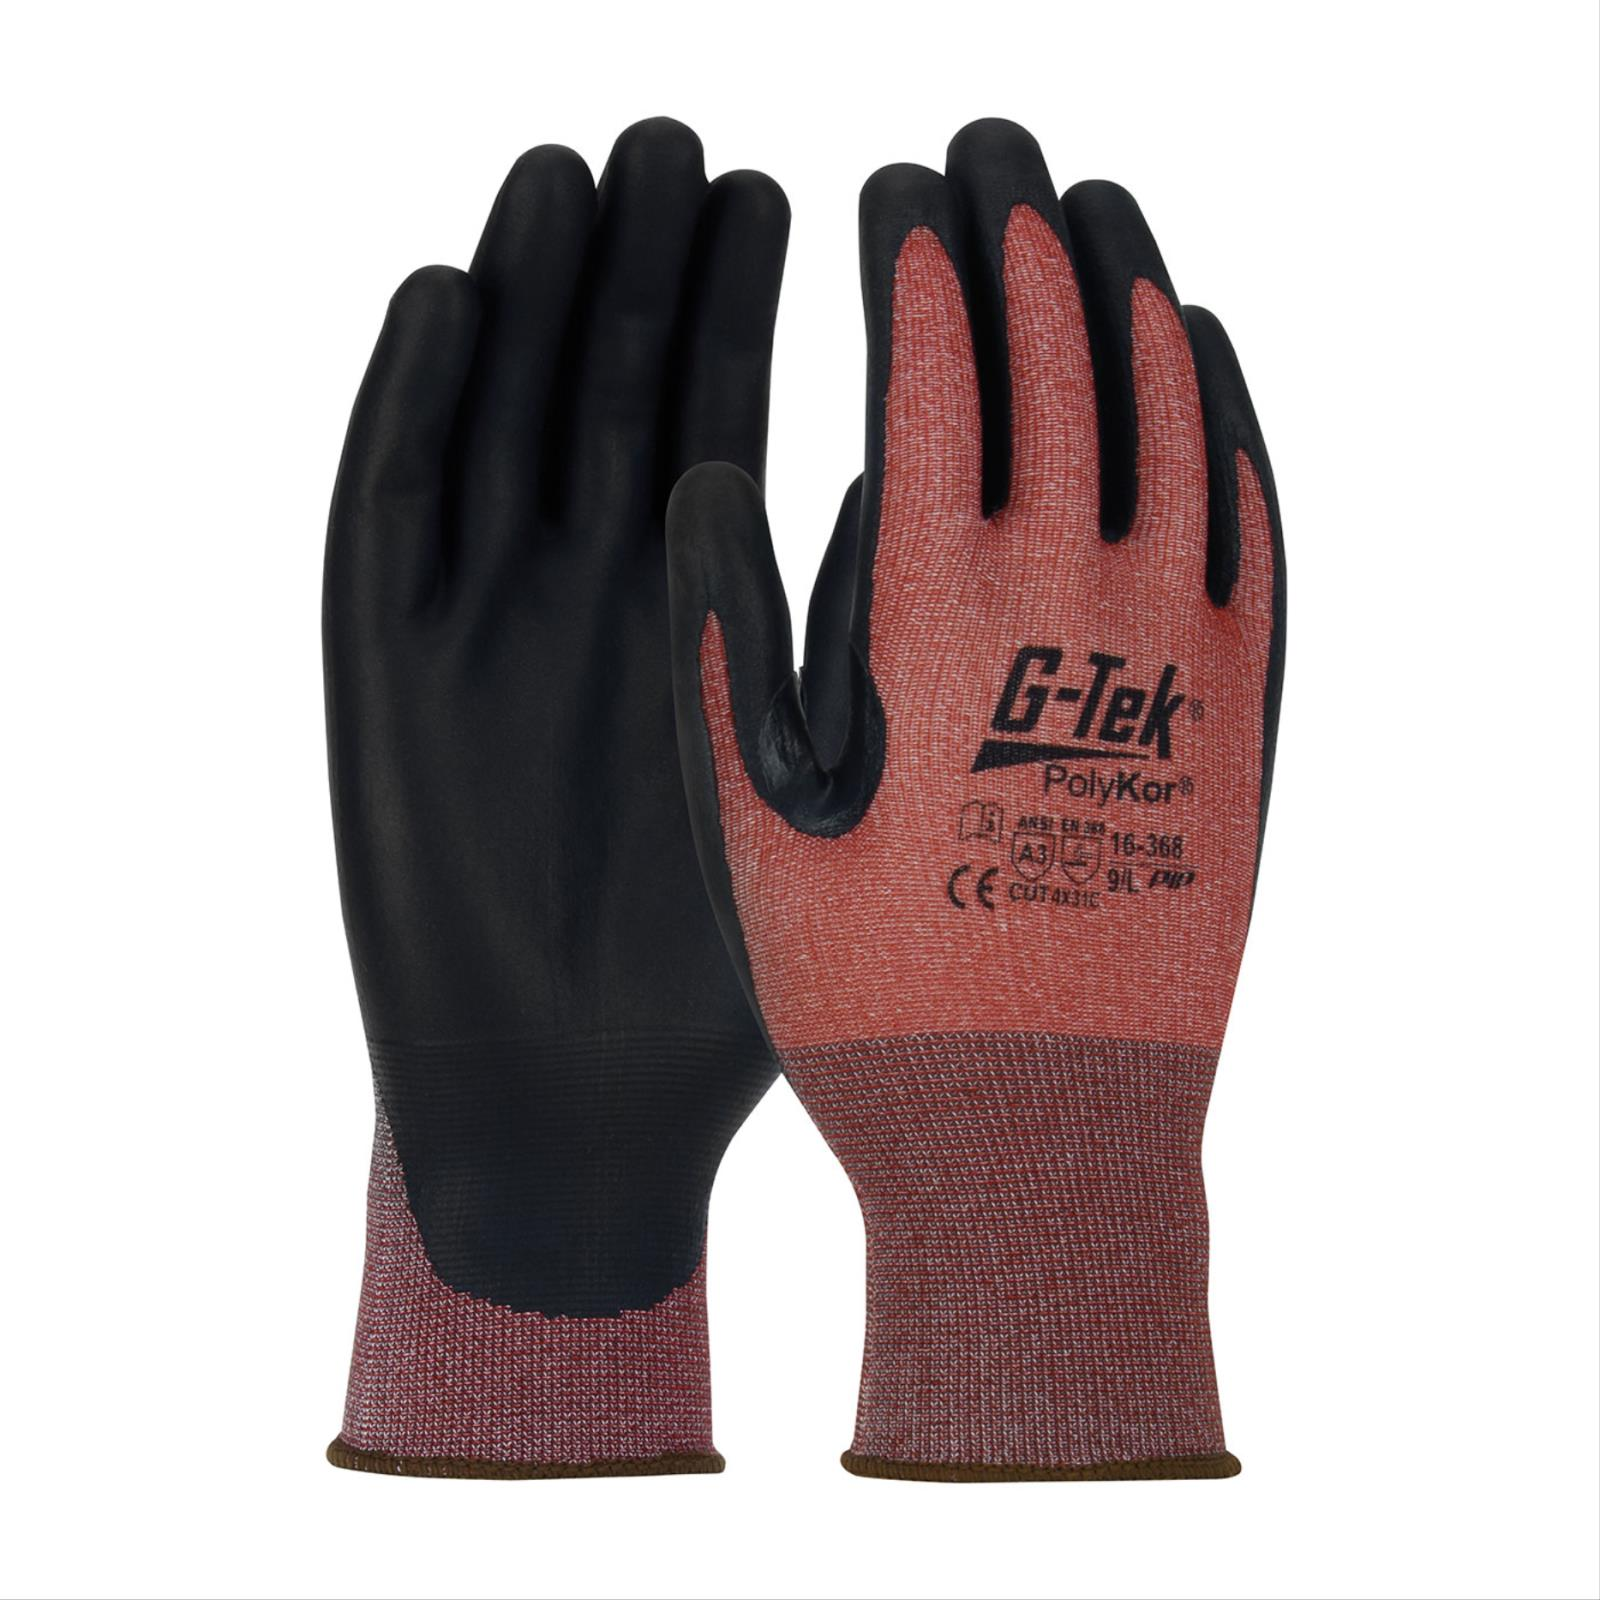 G-Tek® PolyKor® X7™ NeoFoam&reg Blended Glove.  ANSI Cut Level A3